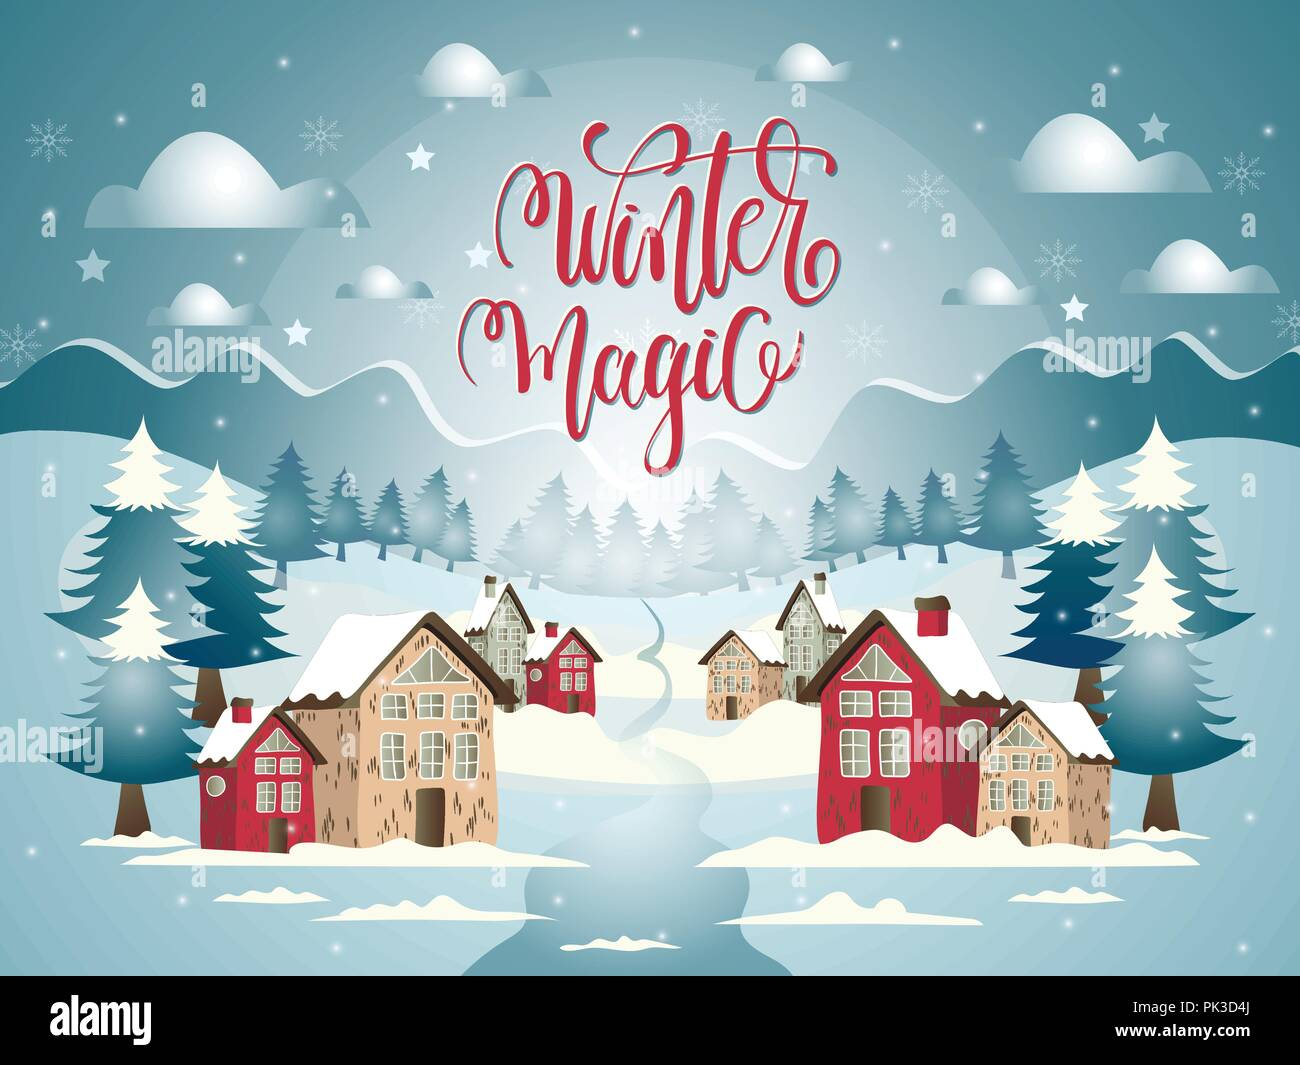 Christmas Land.Cartoon Illustration With Snowy Village And Marry Christmas